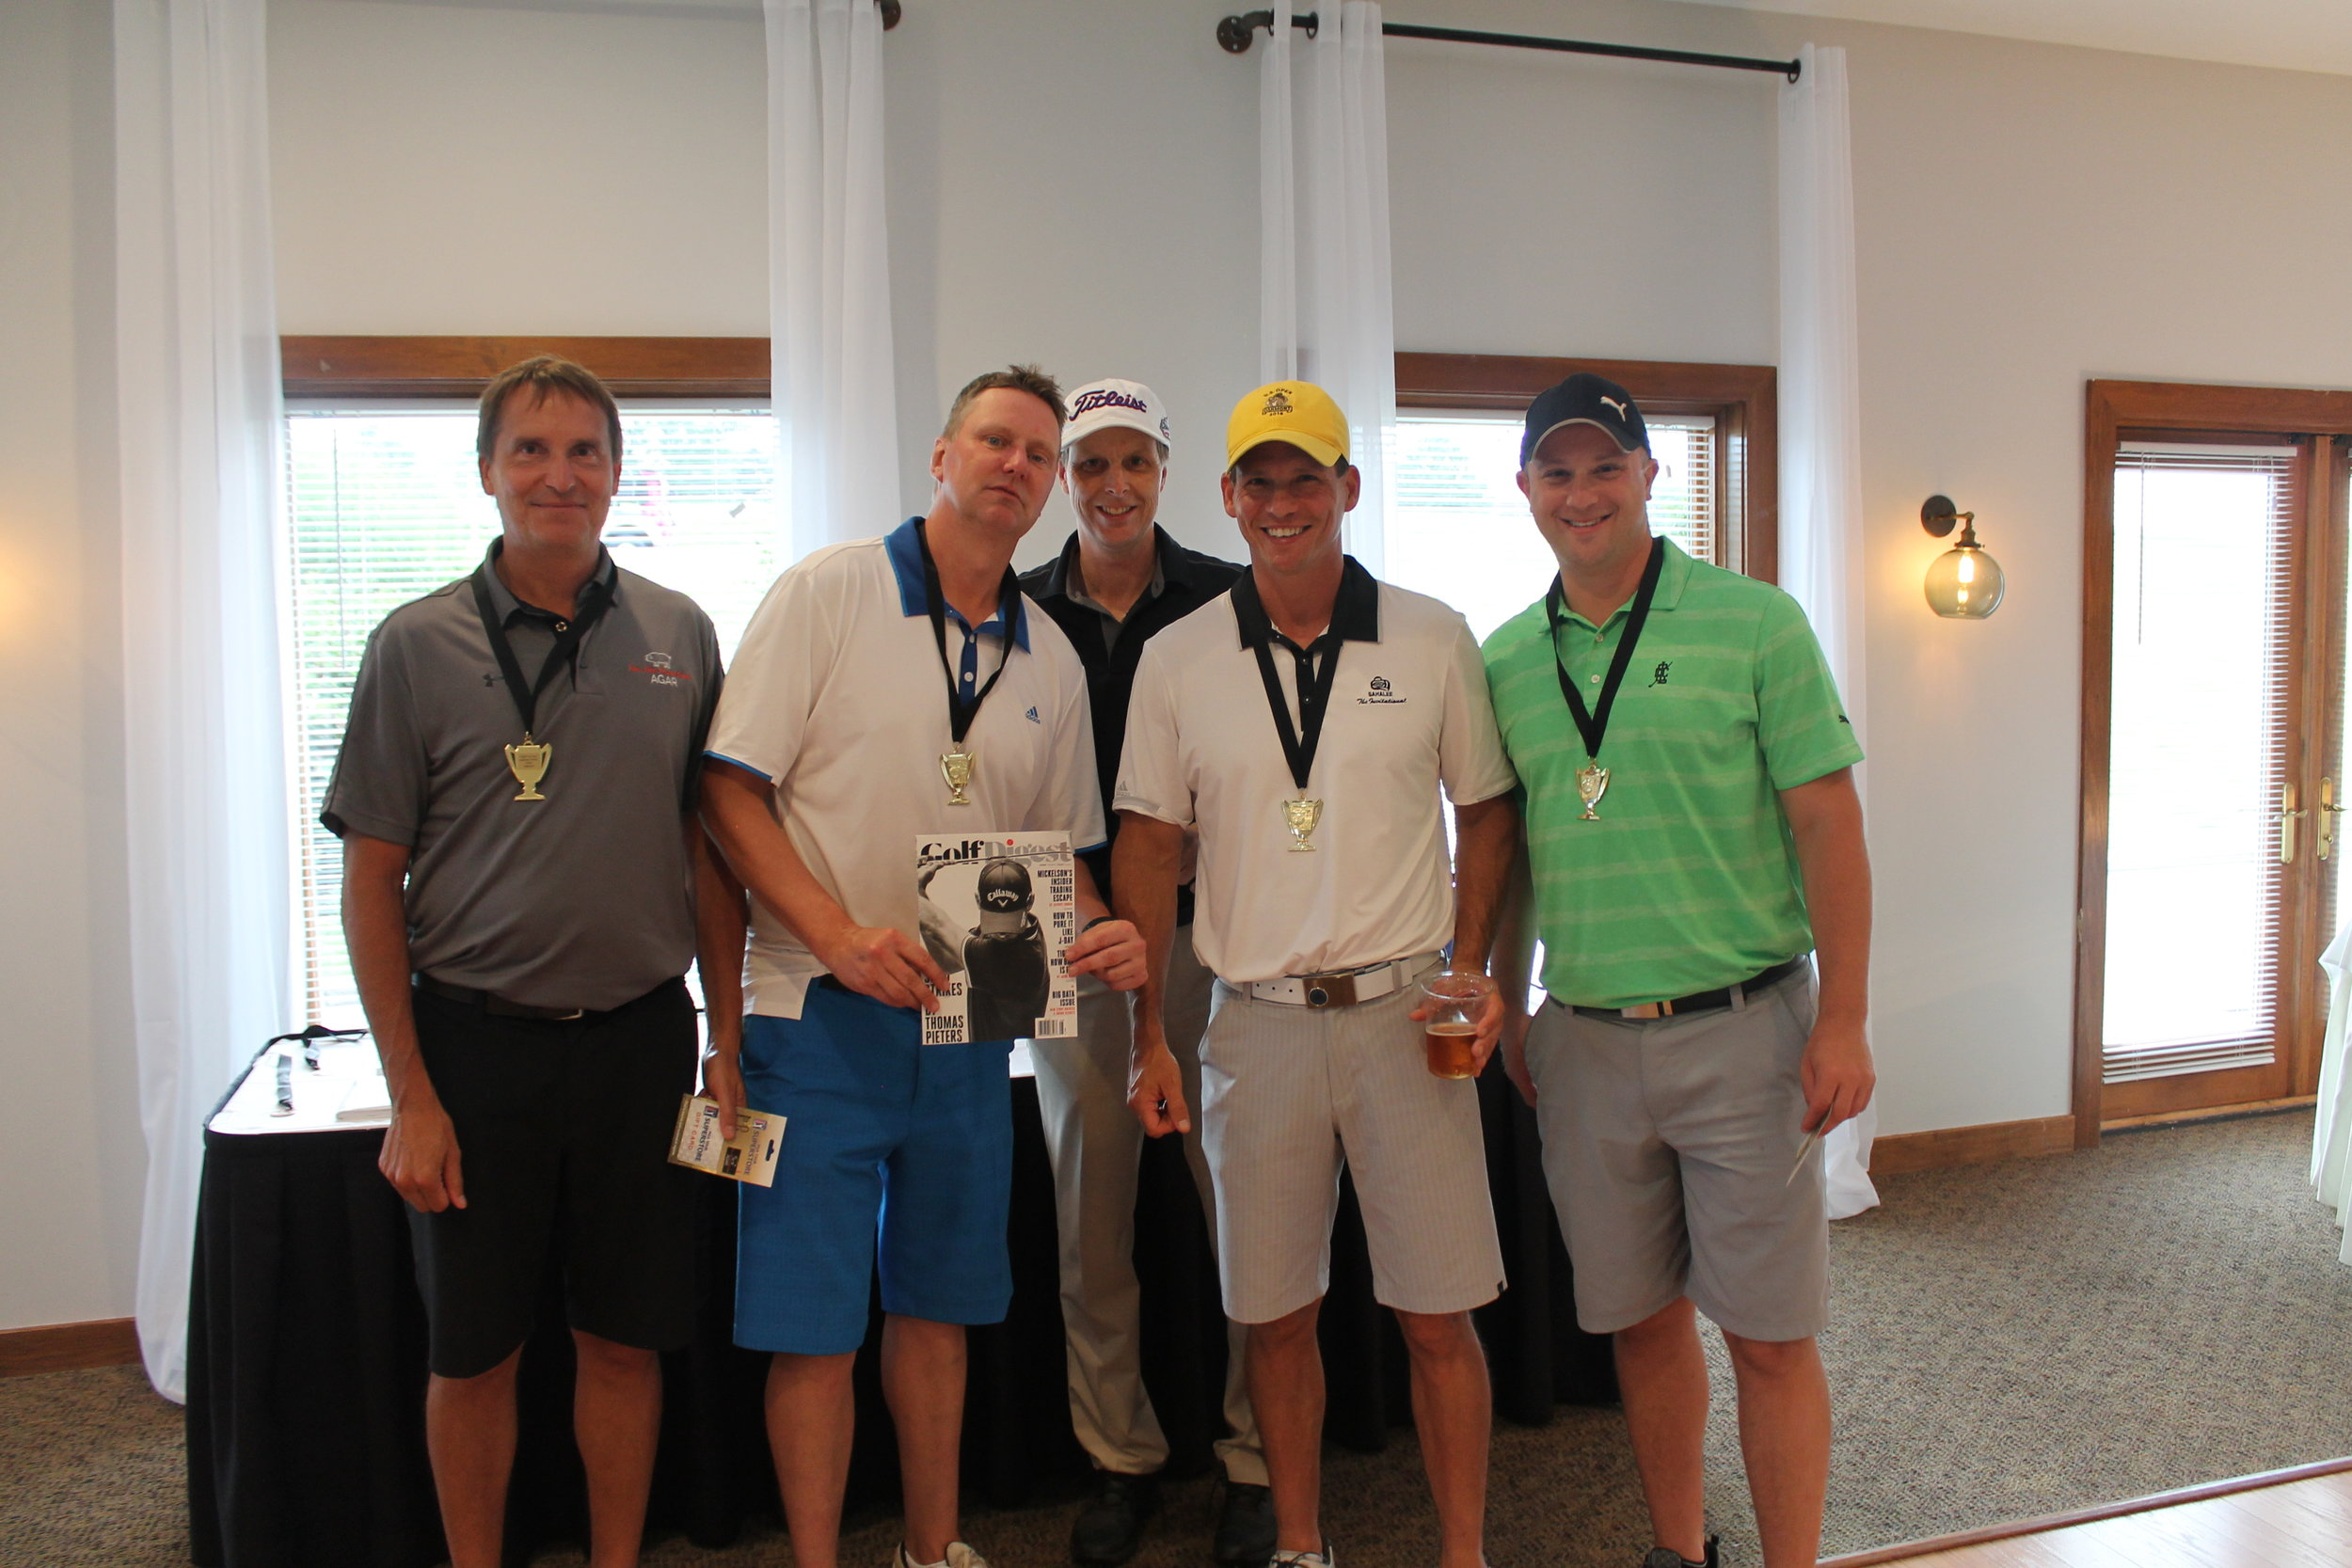 First Place Team:  Dave Piotrowski, Rob Coursey, Sheldon Hamilton, & Brent Martin    were our First Place Winners! They received medals, a 1-year subscription to Golf Digest, & a $50 gift-card to PGA Tour Superstore.